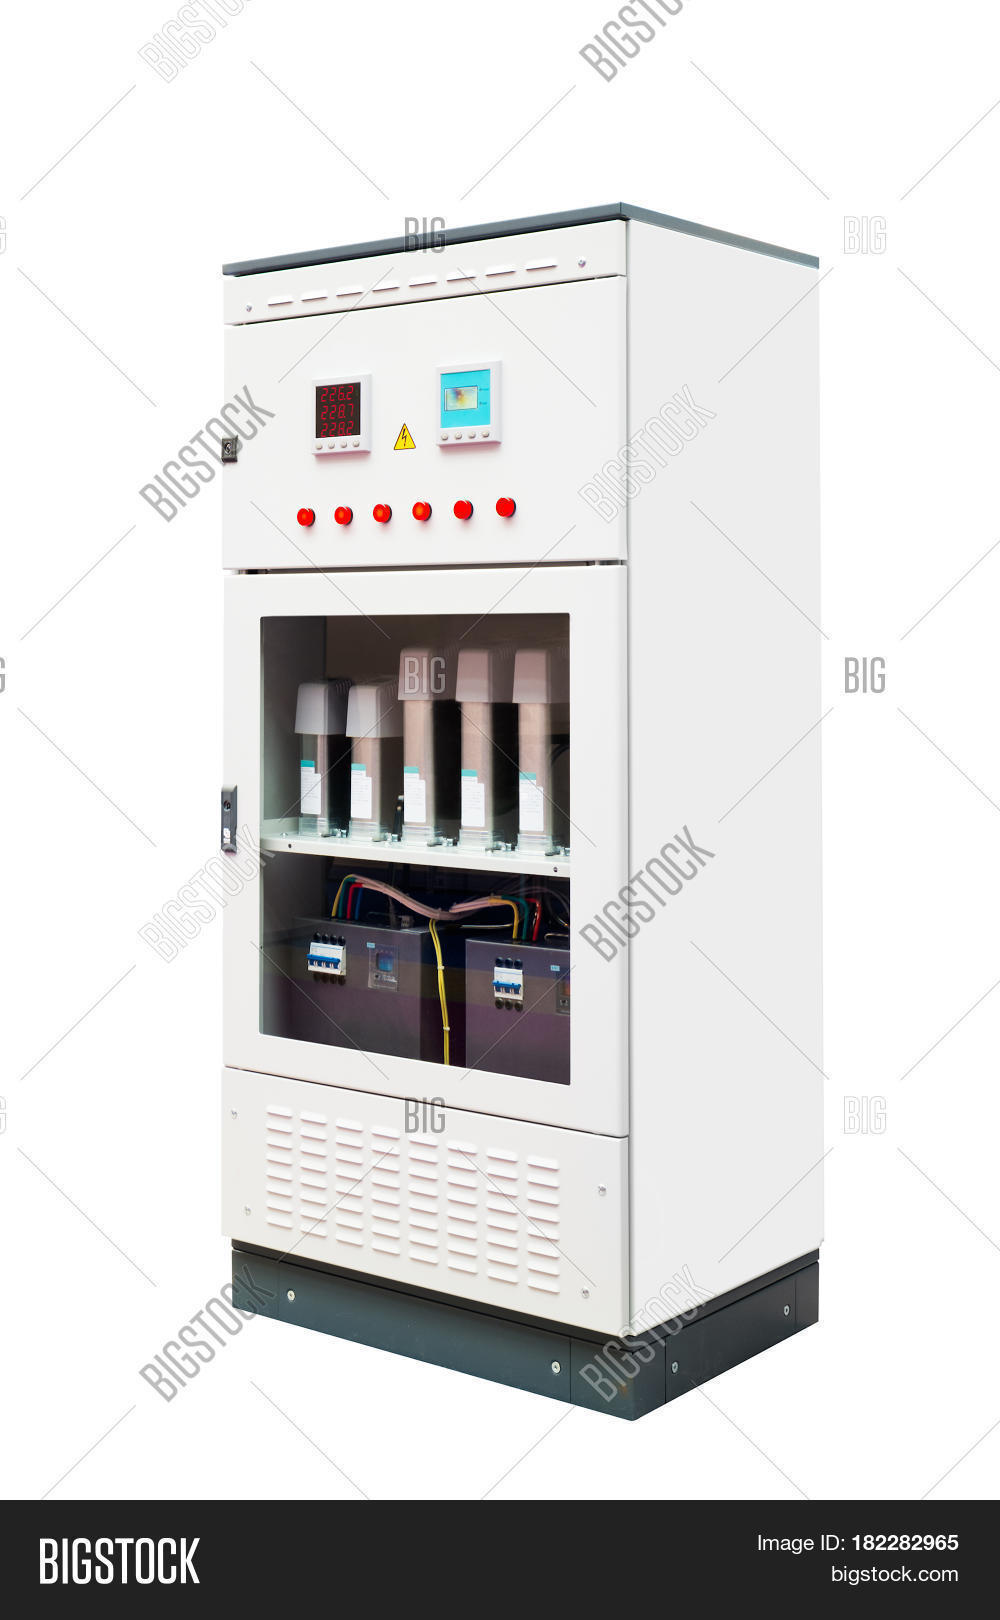 hight resolution of electrical enclosure with its door closed could be electrical circuit breaker fuse box control panel